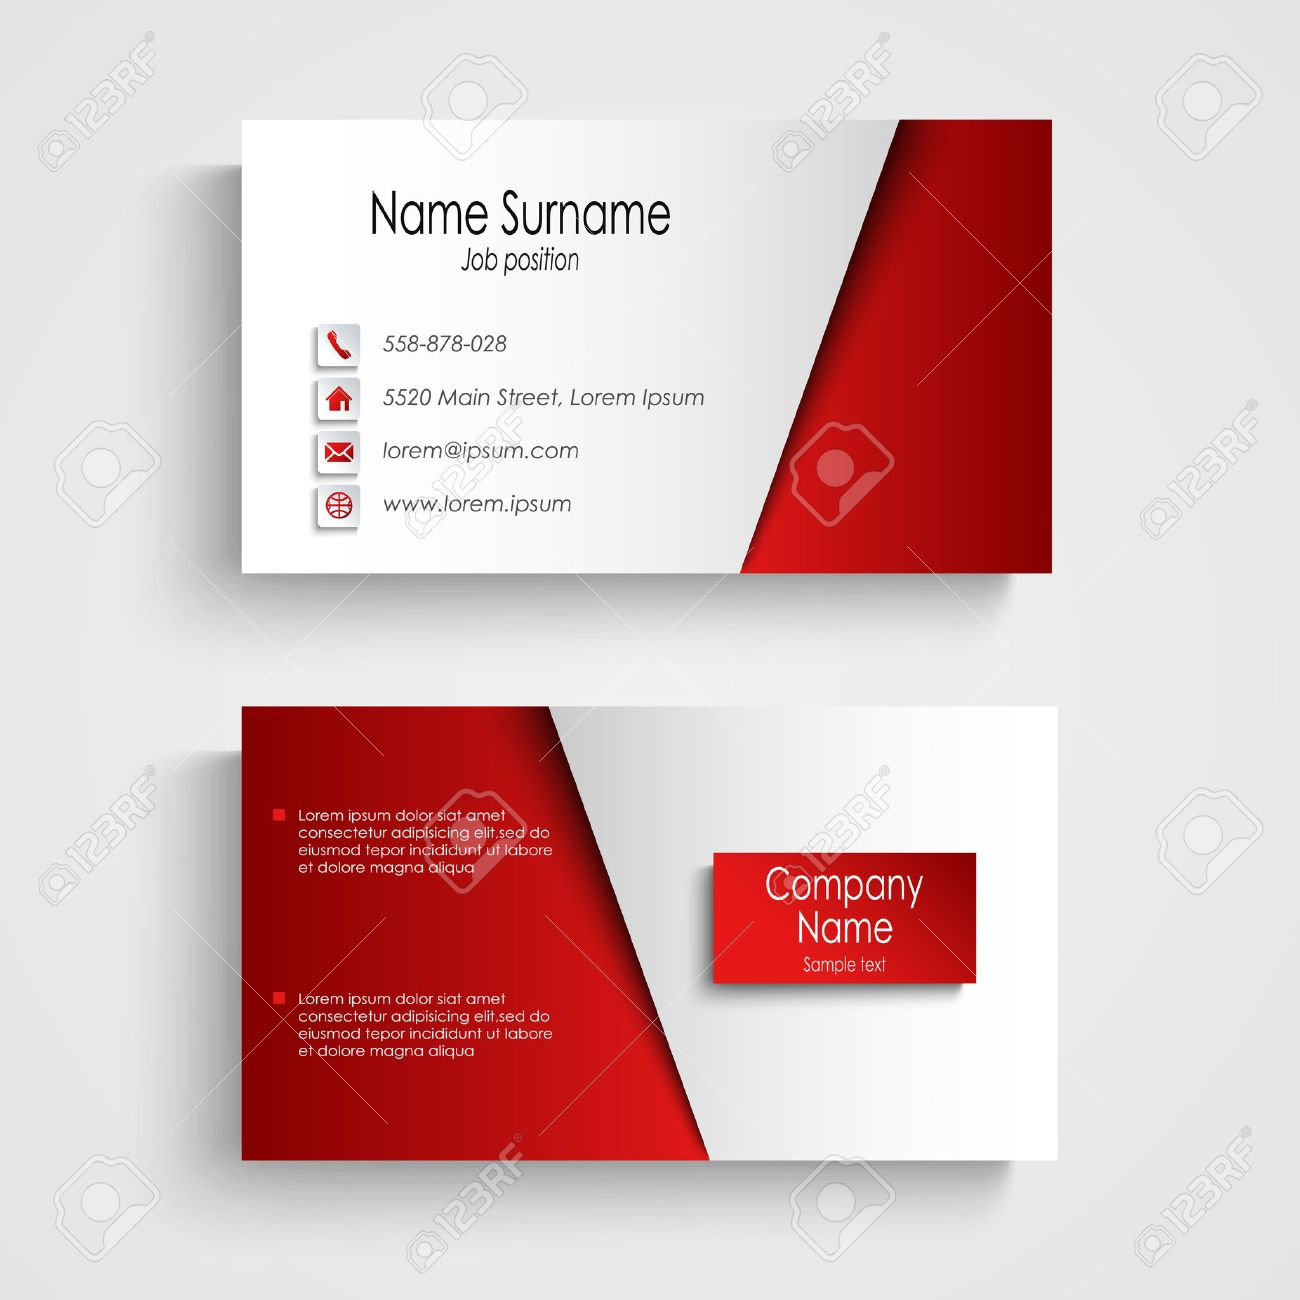 Modern Light Red Business Card Template Vector. Royalty Free ...